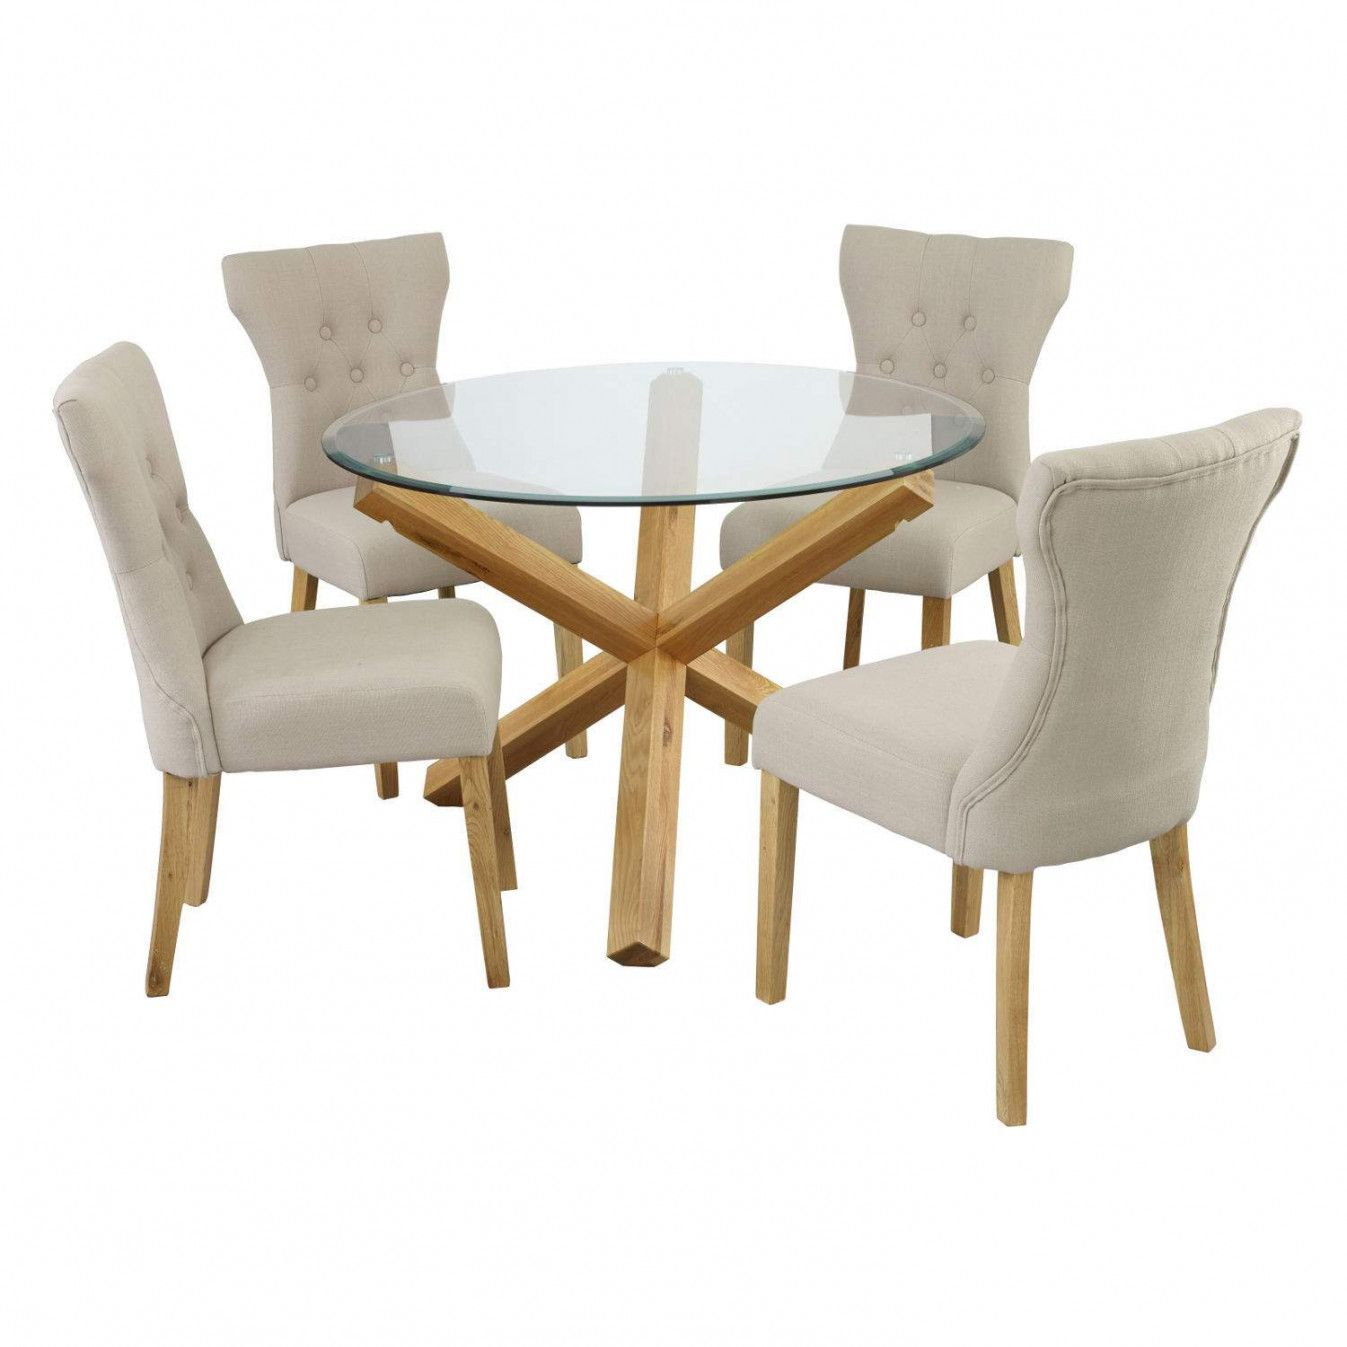 Round dining table and chairs for 4  Pin by easy wood projects on Modern Home interior ideas  Pinterest